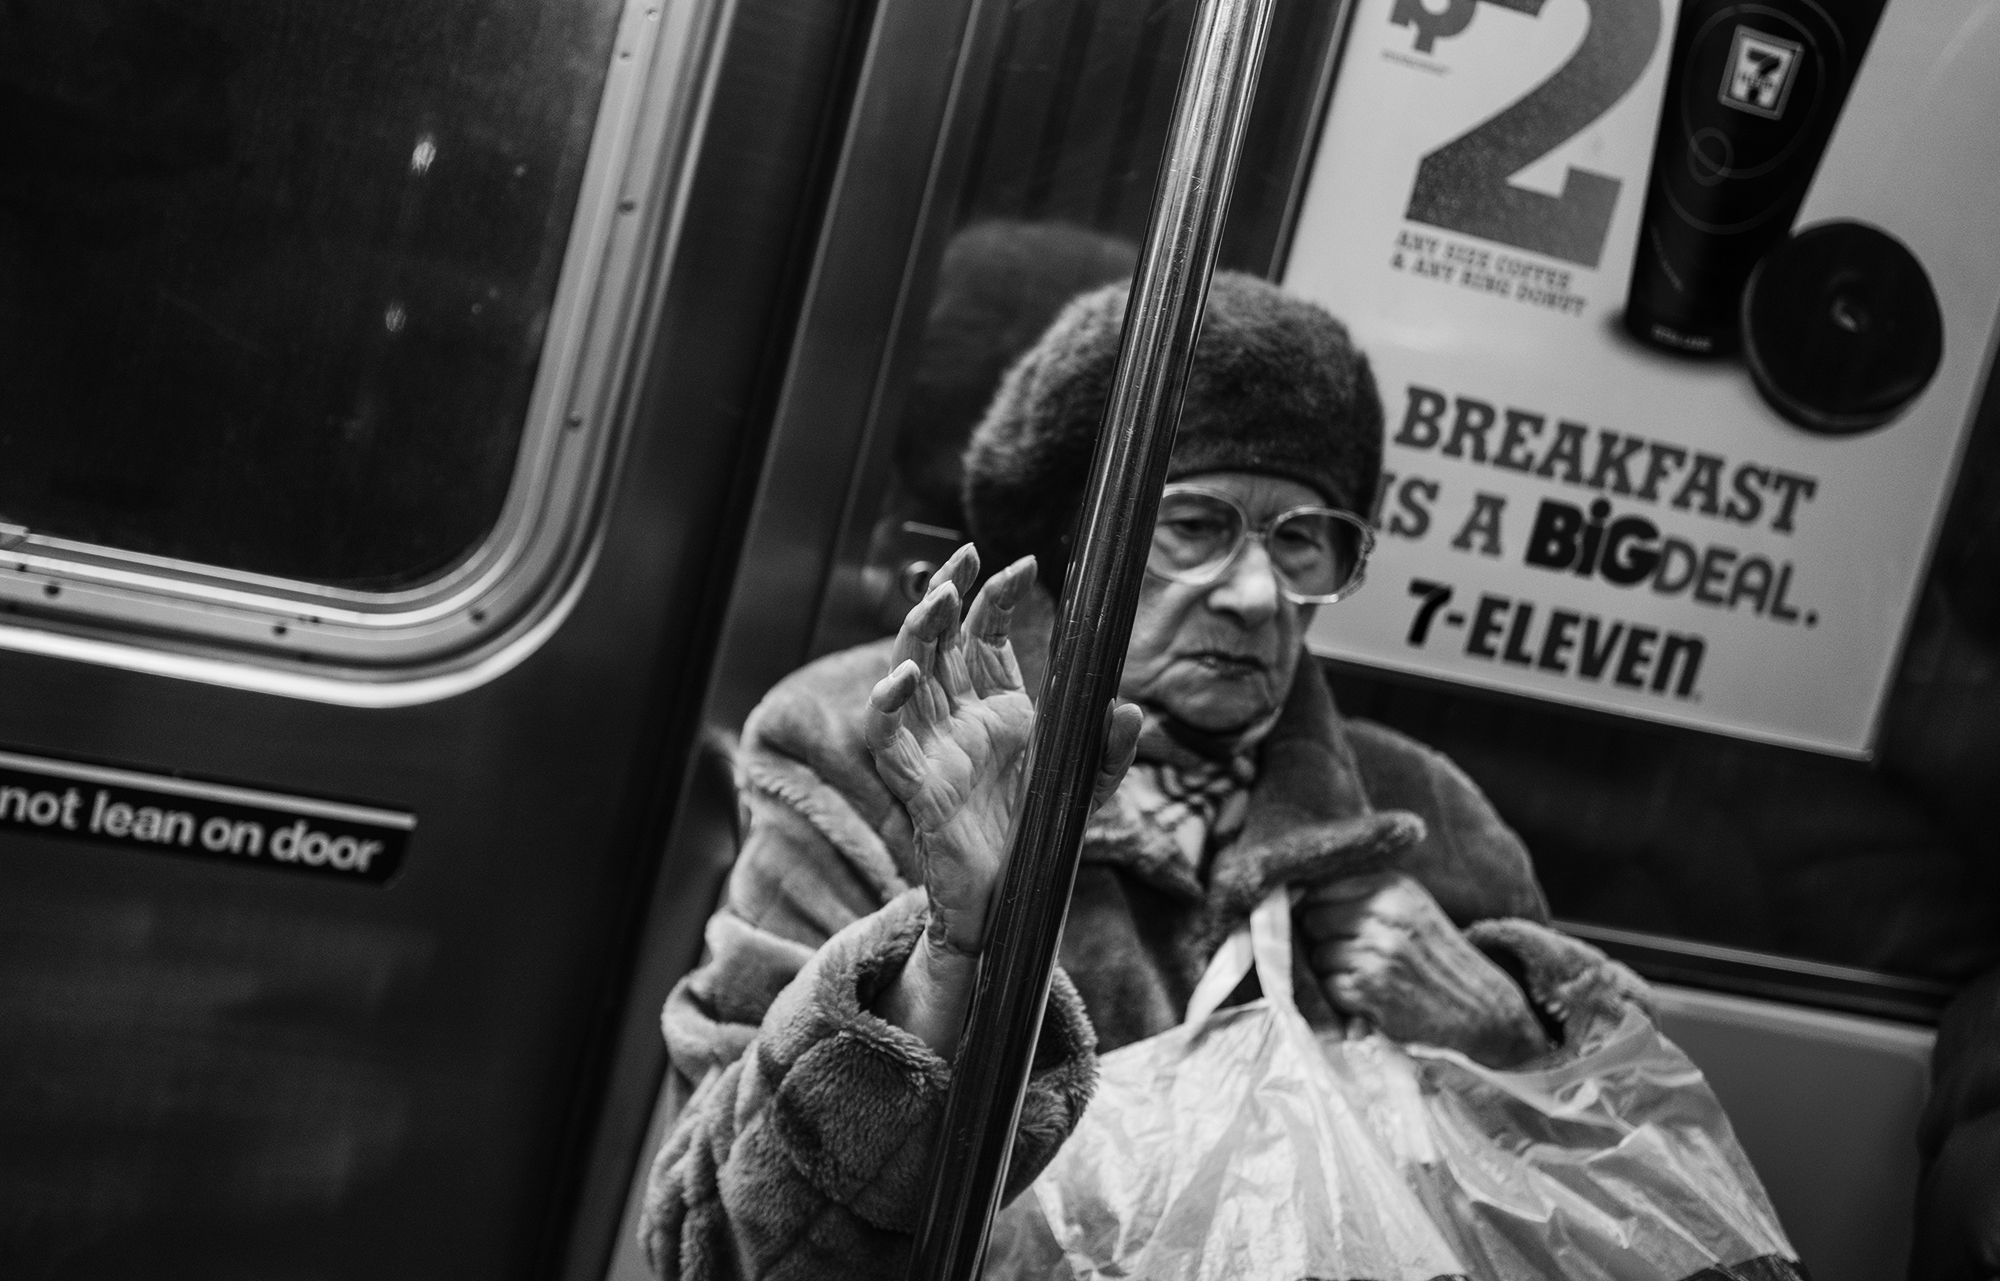 Old_Lady_and_her_Hand_Subway_2016crp-006.jpg